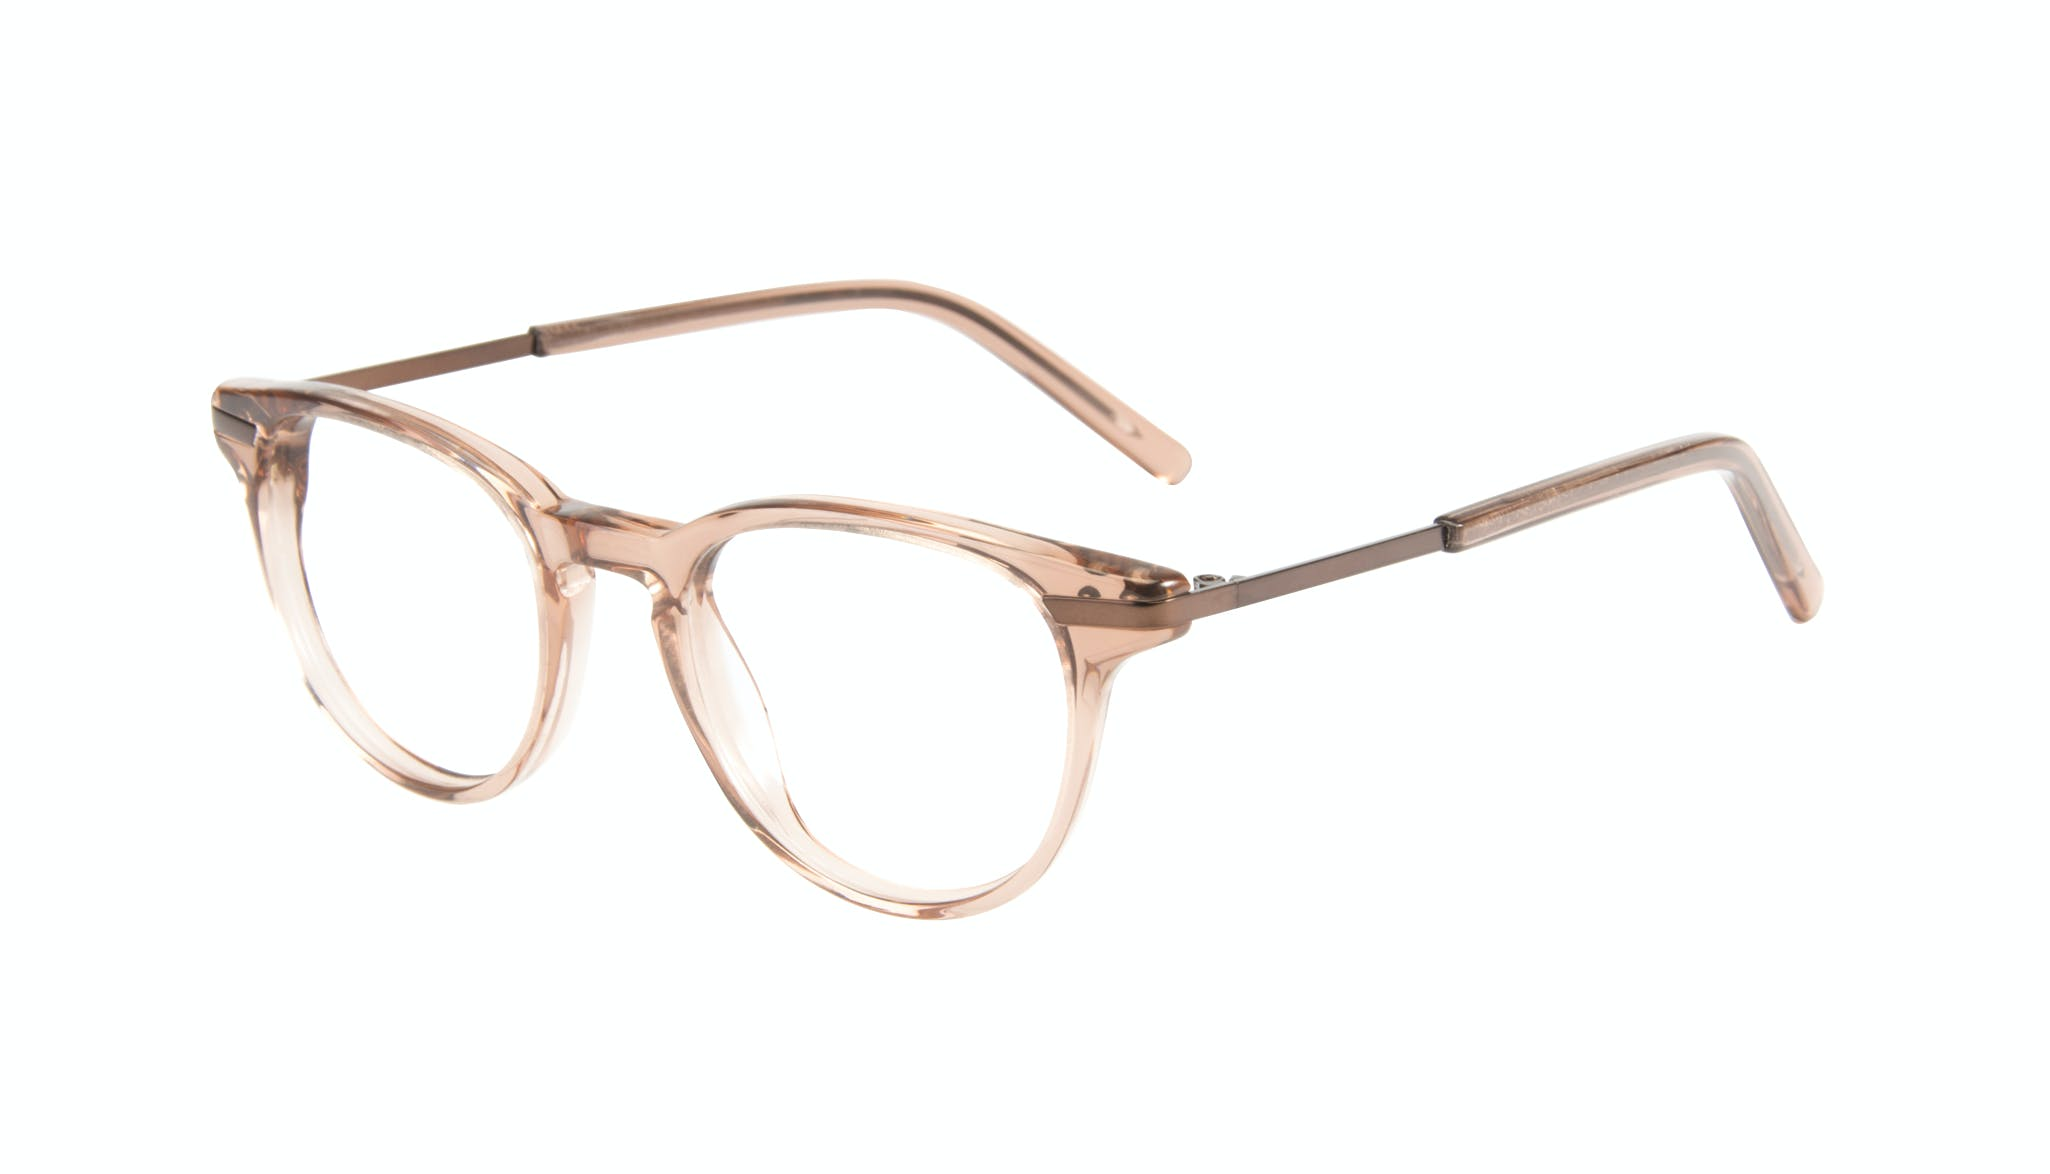 Affordable Fashion Glasses Round Eyeglasses Women Spark Rose Tilt